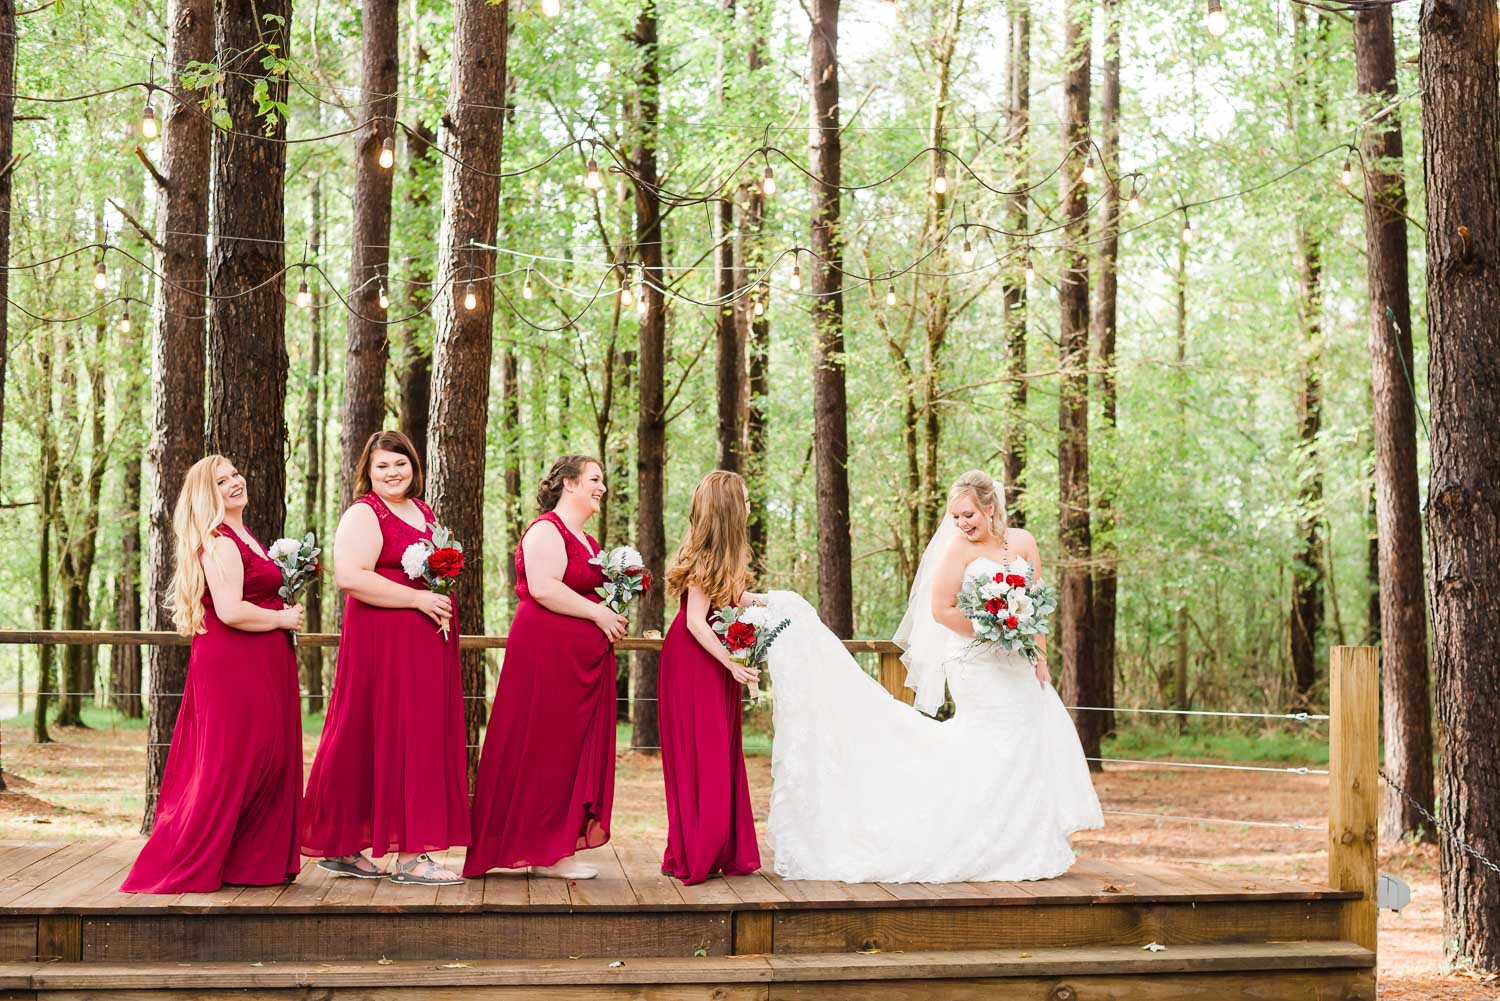 bridesmaids helping bride walk across stage at the Forest Ceremony site in the tall Pines